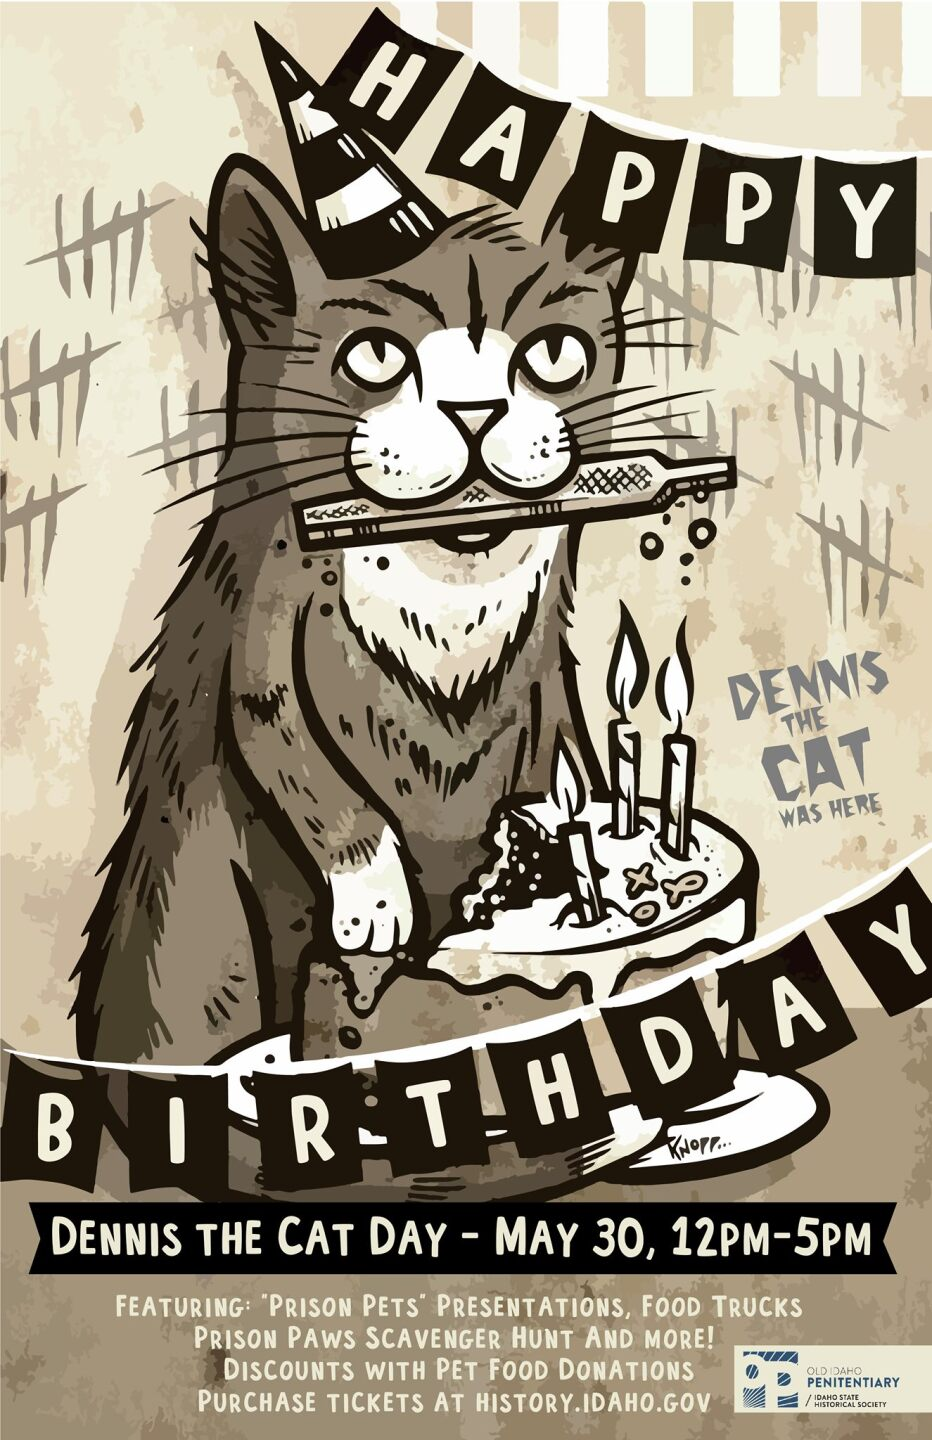 Dennis the Cat Day